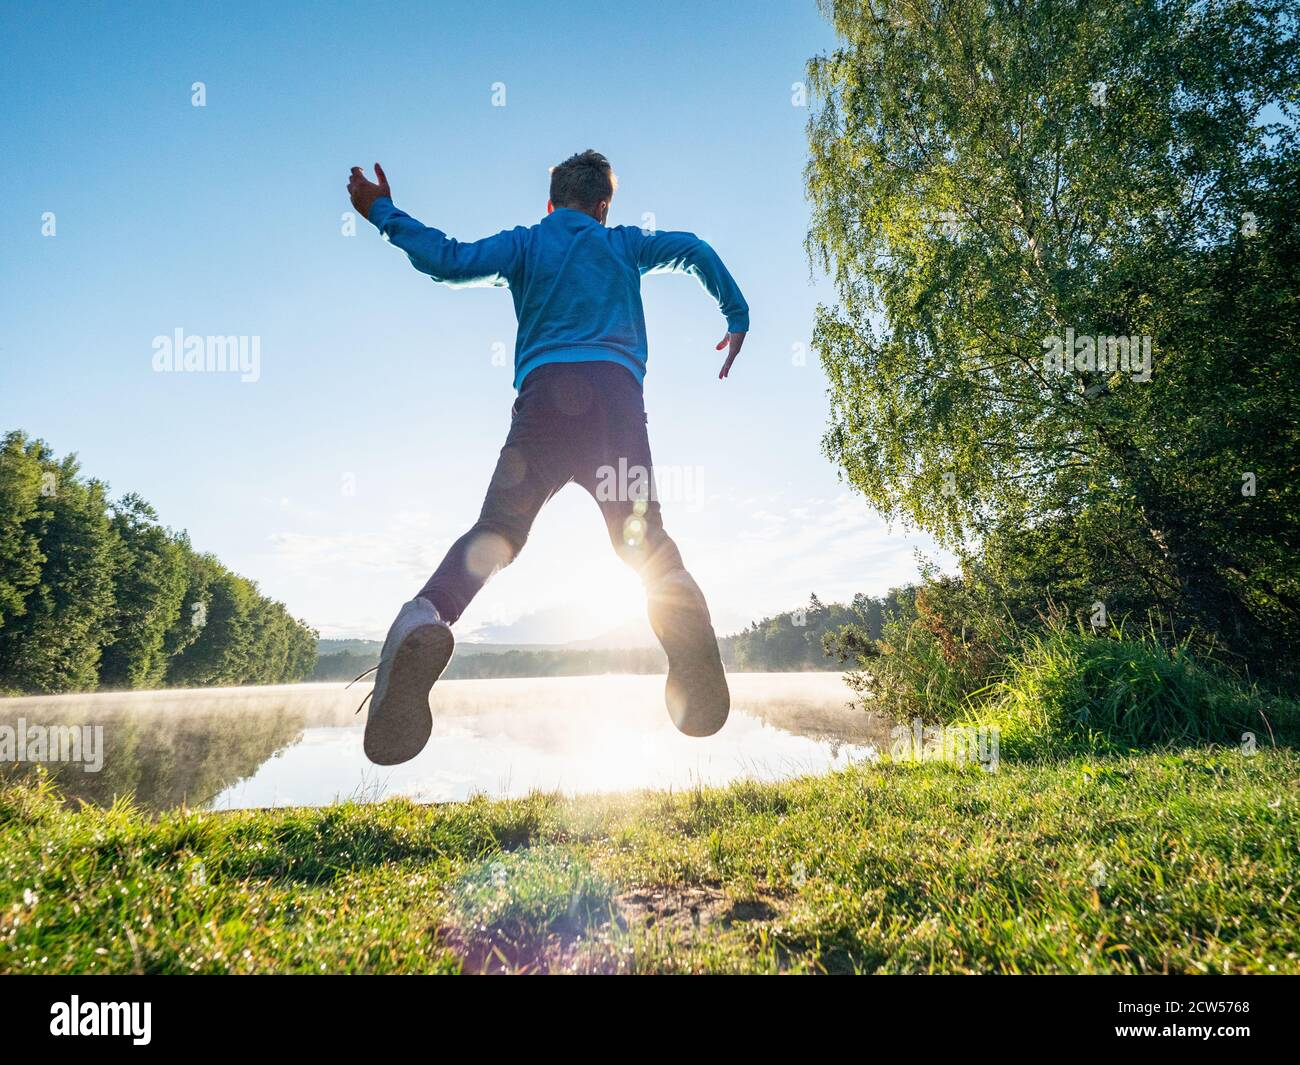 Crazy jumping boy celebrate freedom and make a fun at lake. Crazy and amazing  childood Stock Photo